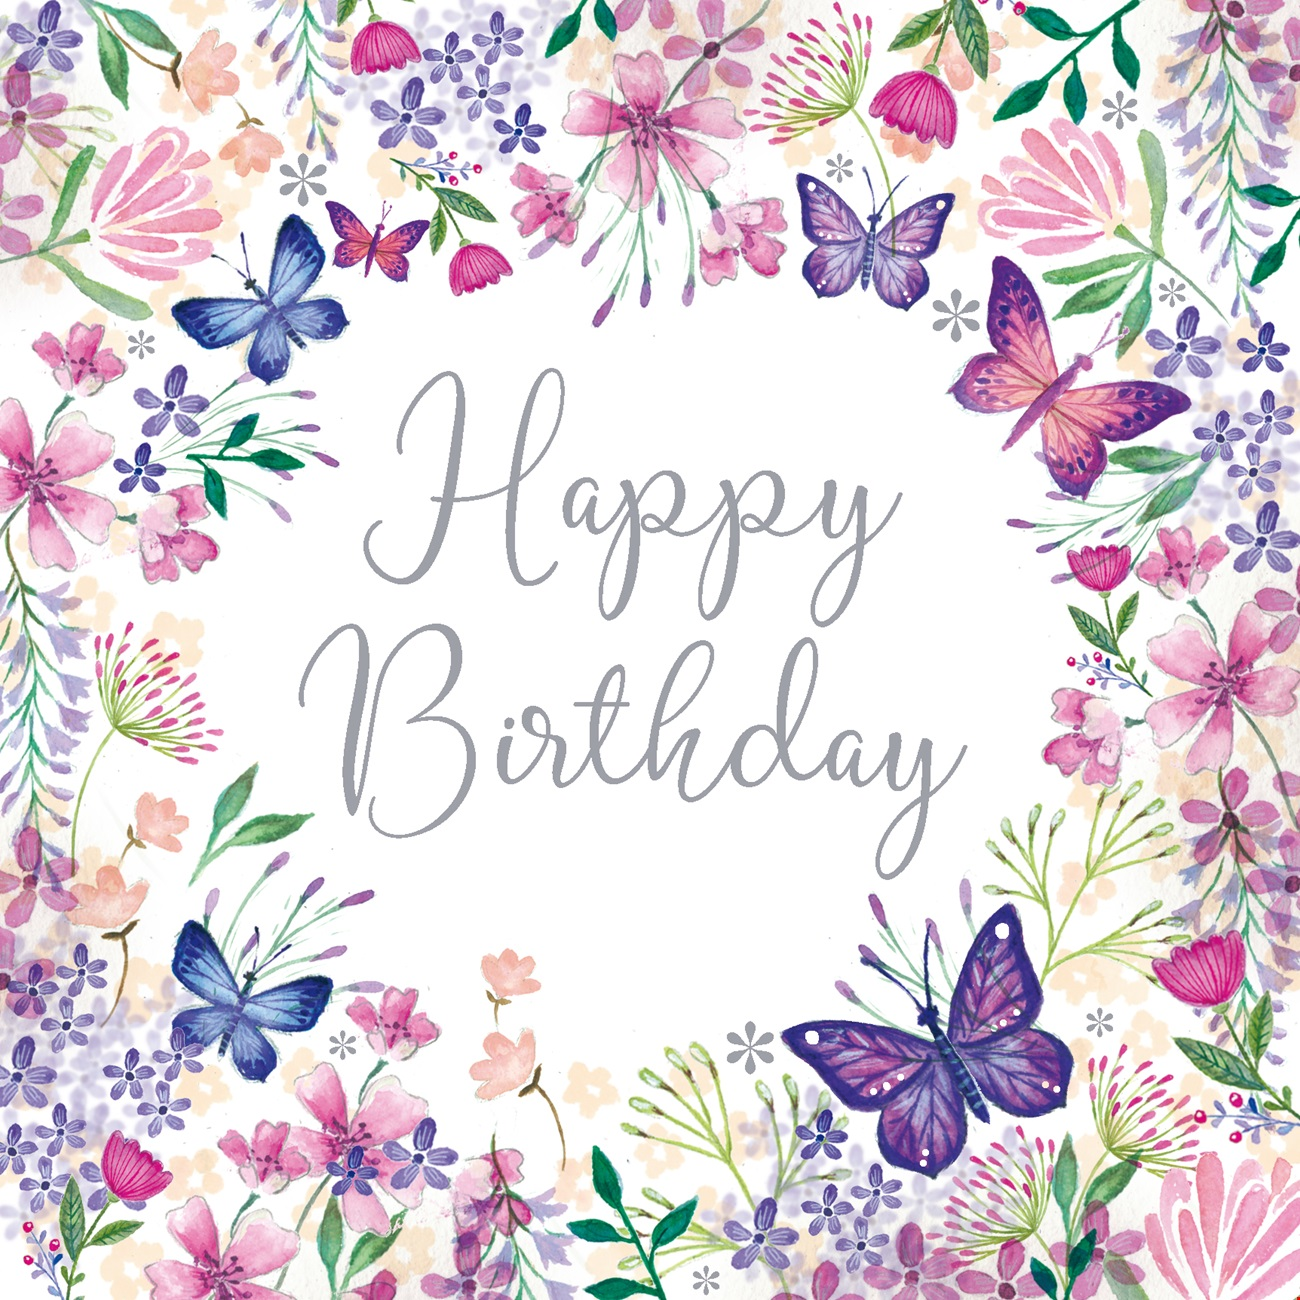 Brithday Greetings Card - Floral Border